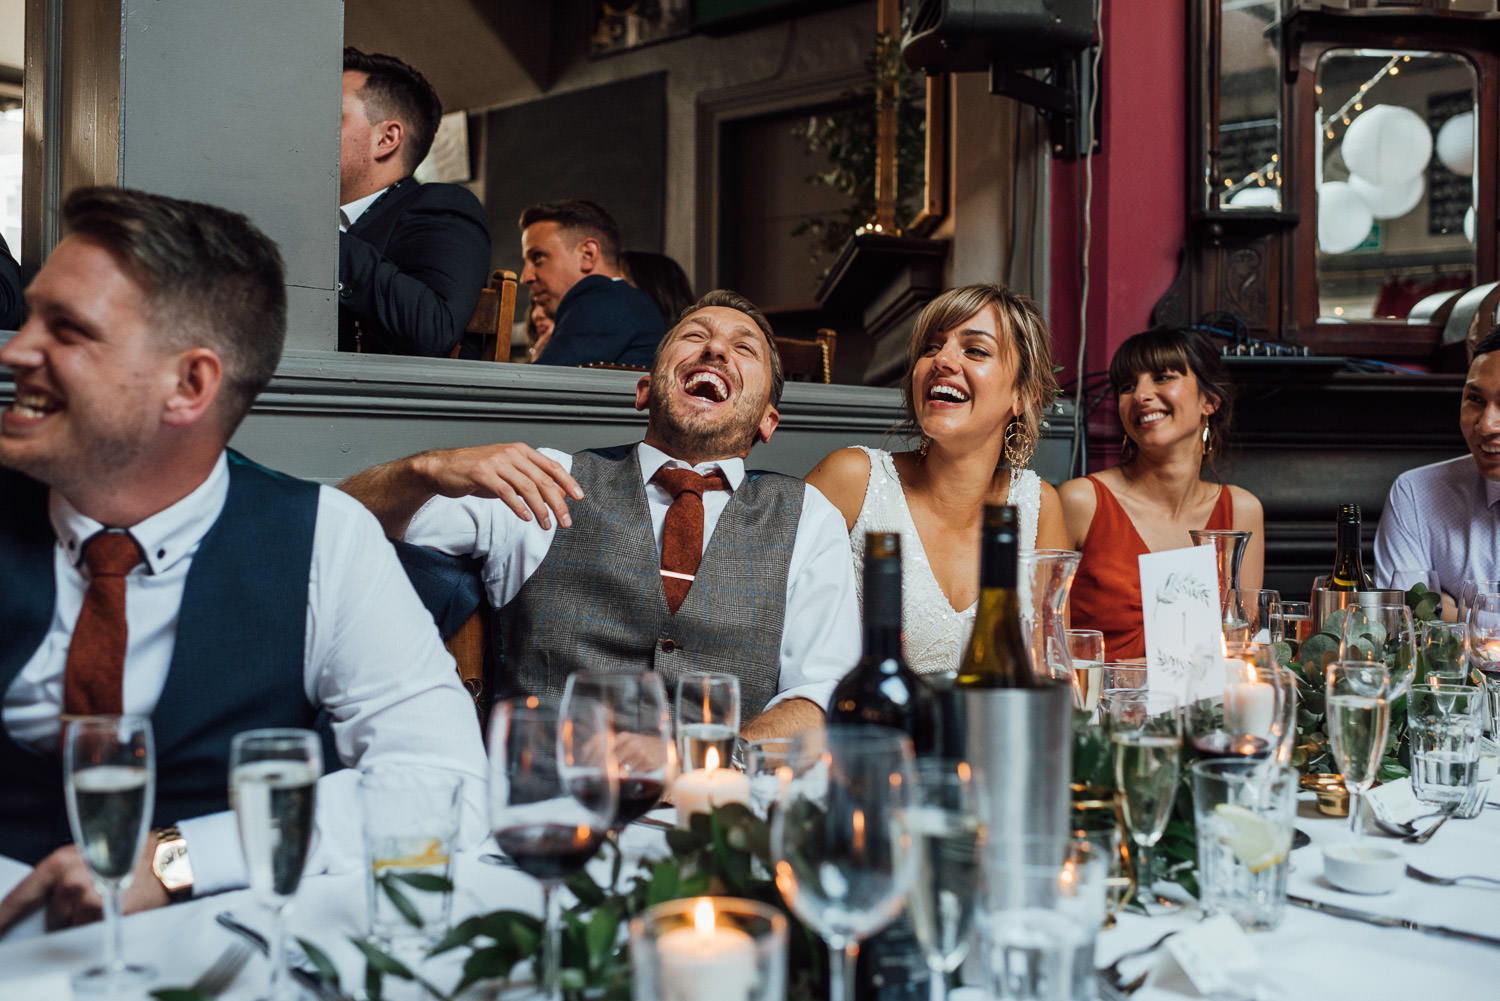 stoke newington pub documentary london wedding photographer